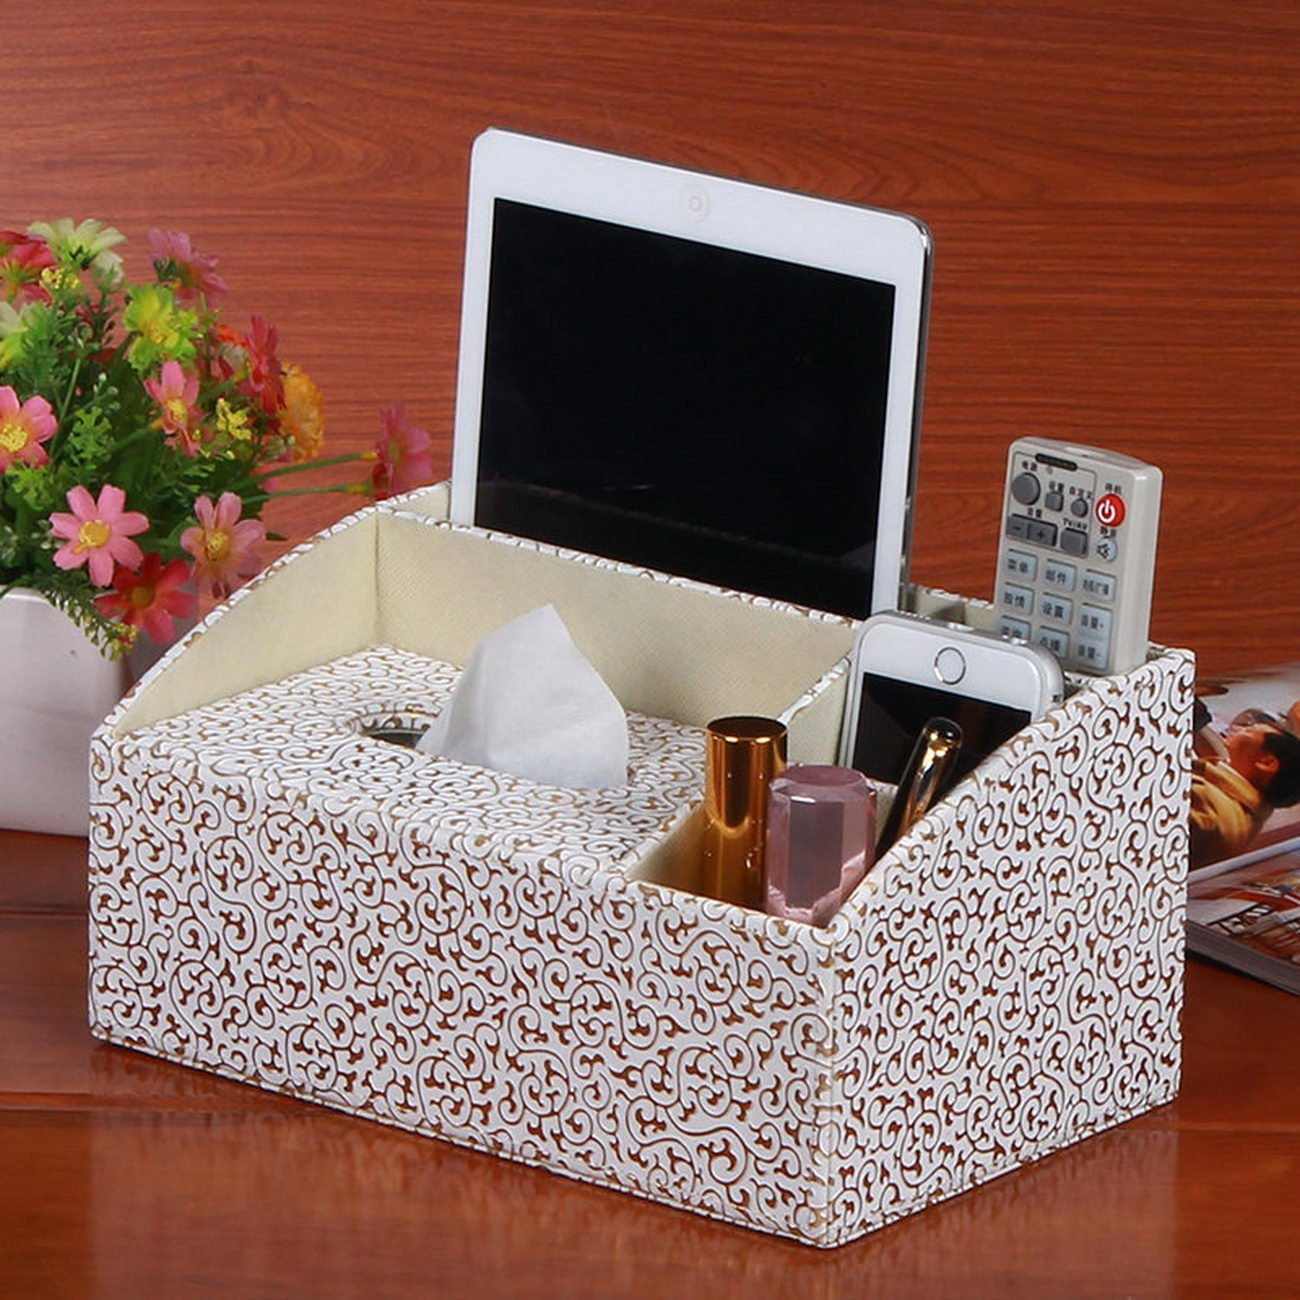 creative home supplies creative home supplies multifunctional tissue box desktop remote control leather , creative home supplies, household items, creative products, leather pumping paper box, stora